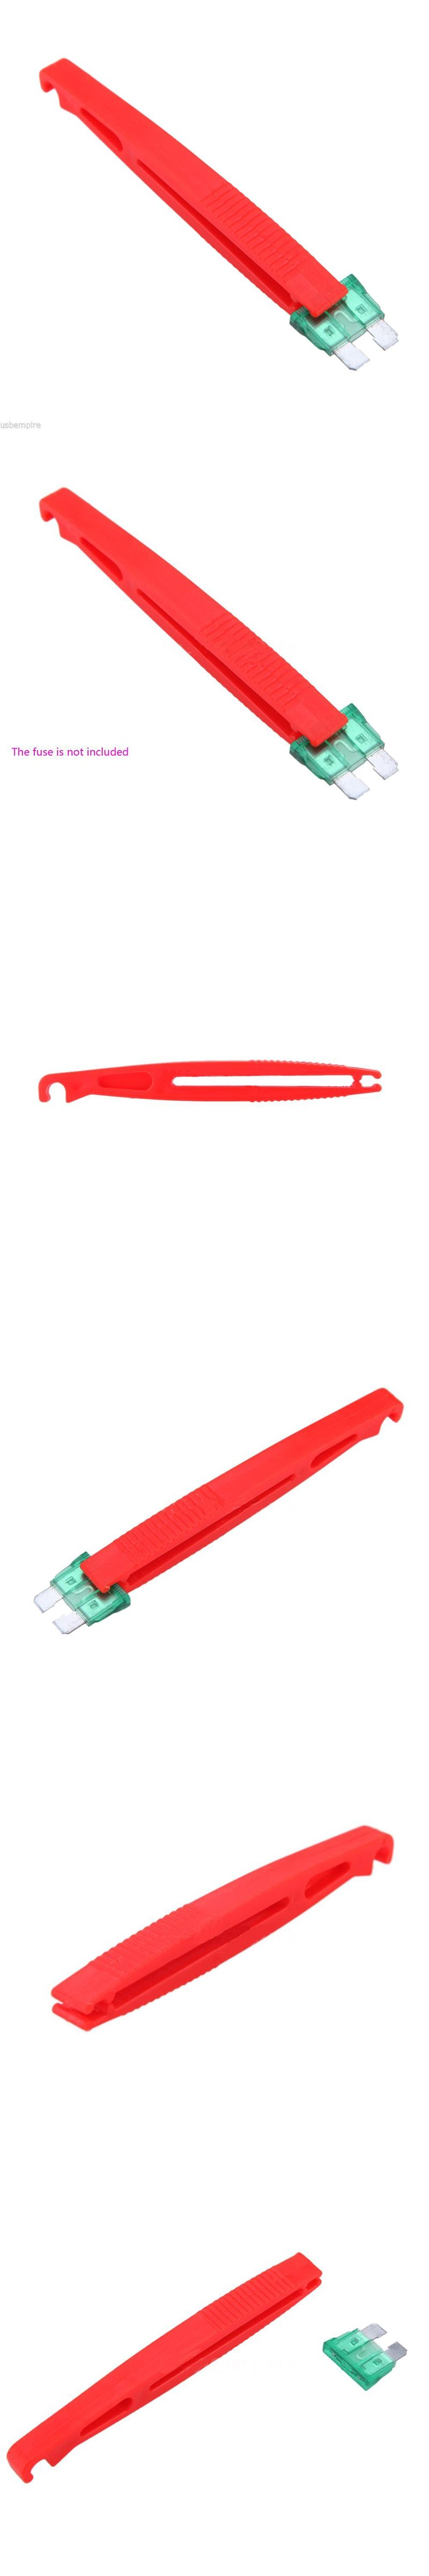 2pcs Set New Car Blade Glass Plastic Fuses Ato Puller Red Clip Fuse Box Extraction Tool